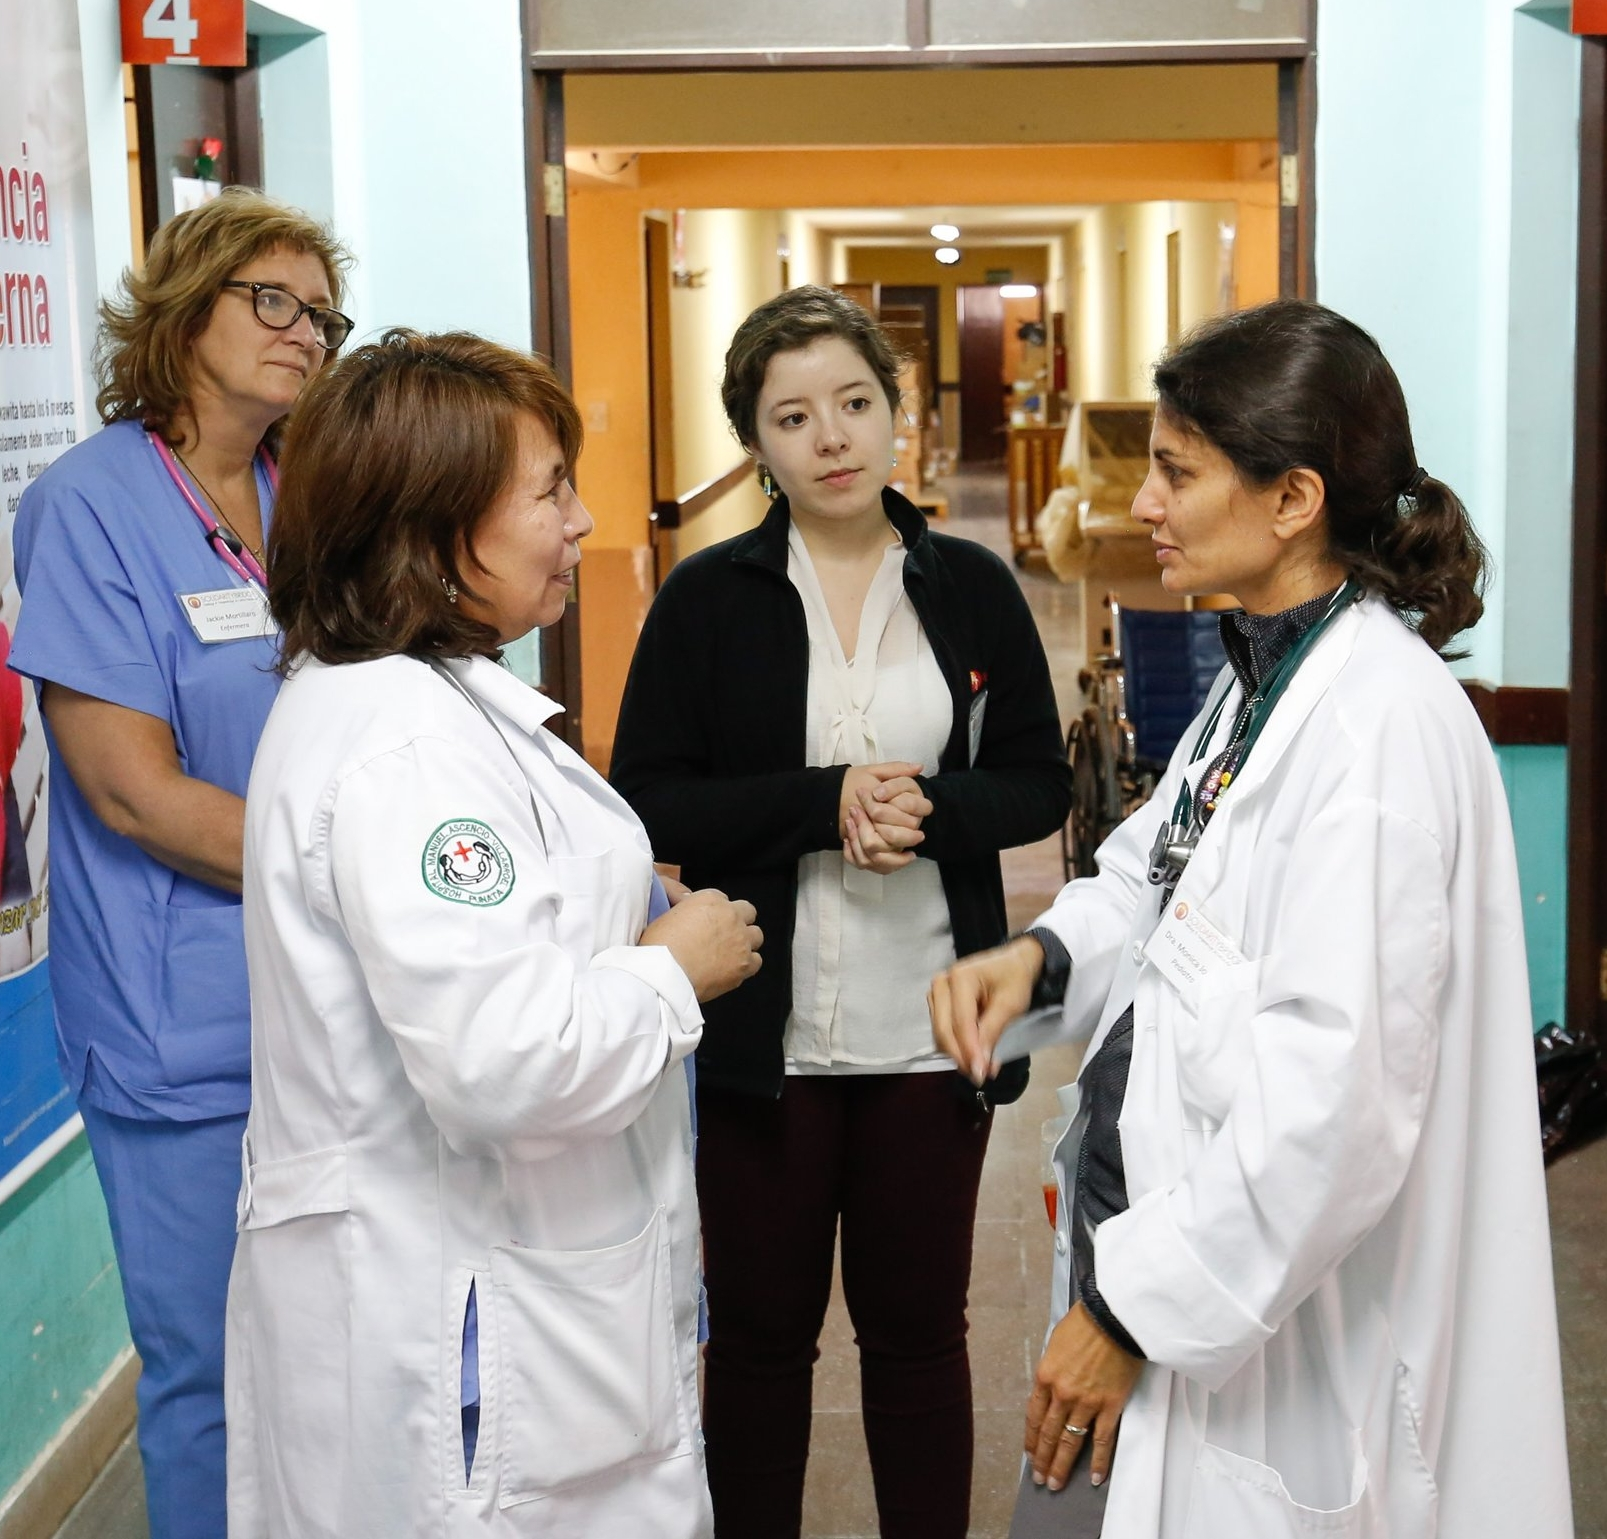 Become a Missioner - Highly specialized medical practitioners in the United States join their Bolivian professional peers as respected collaborators in our common endeavor to bring surgery and medical care to the underserved.